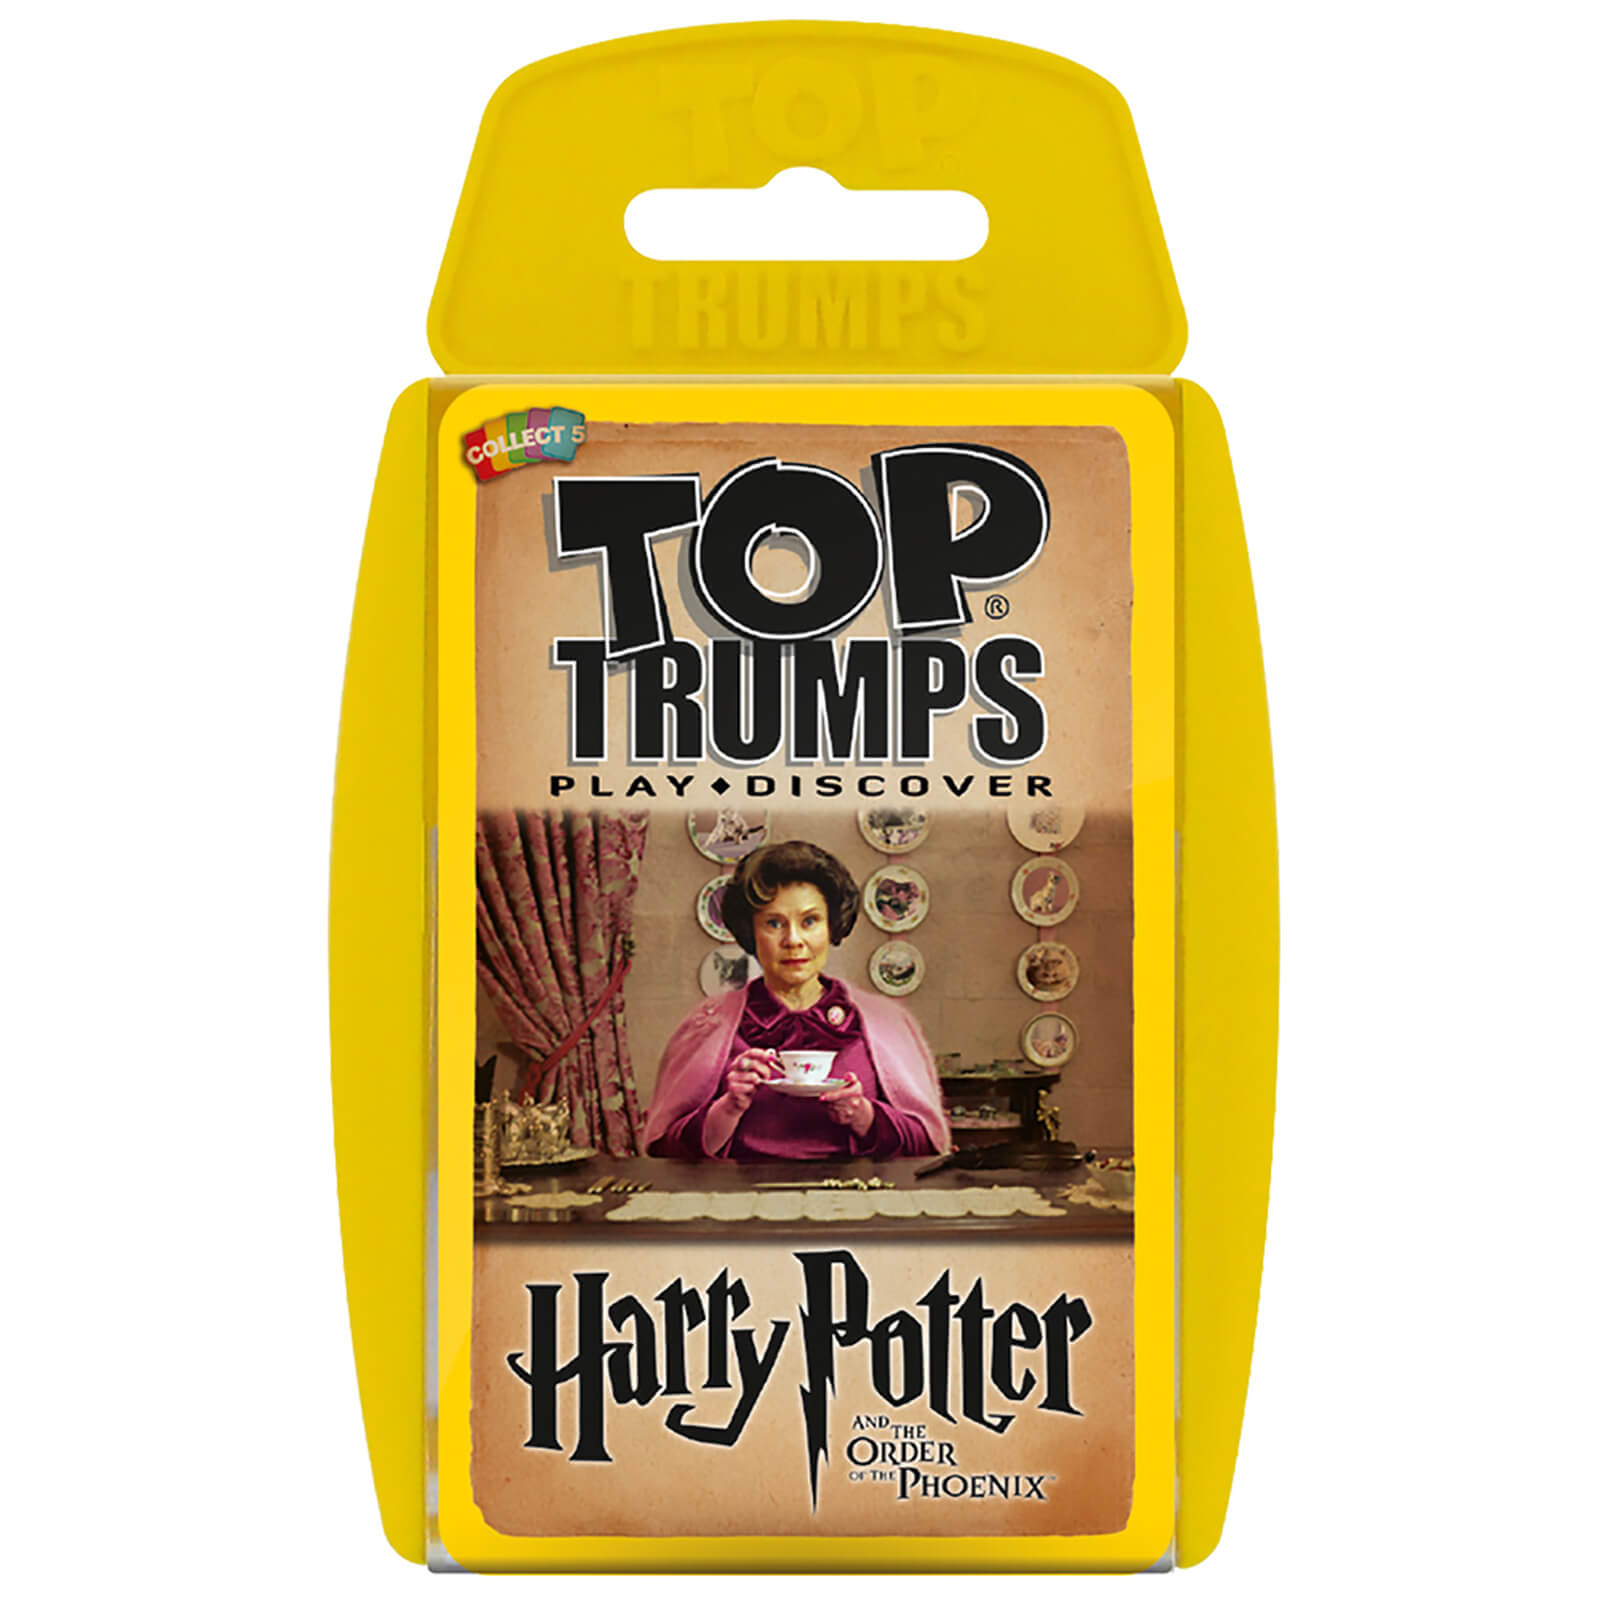 Image of Top Trumps Card Game - Harry Potter and the Order of the Phoenix Edition